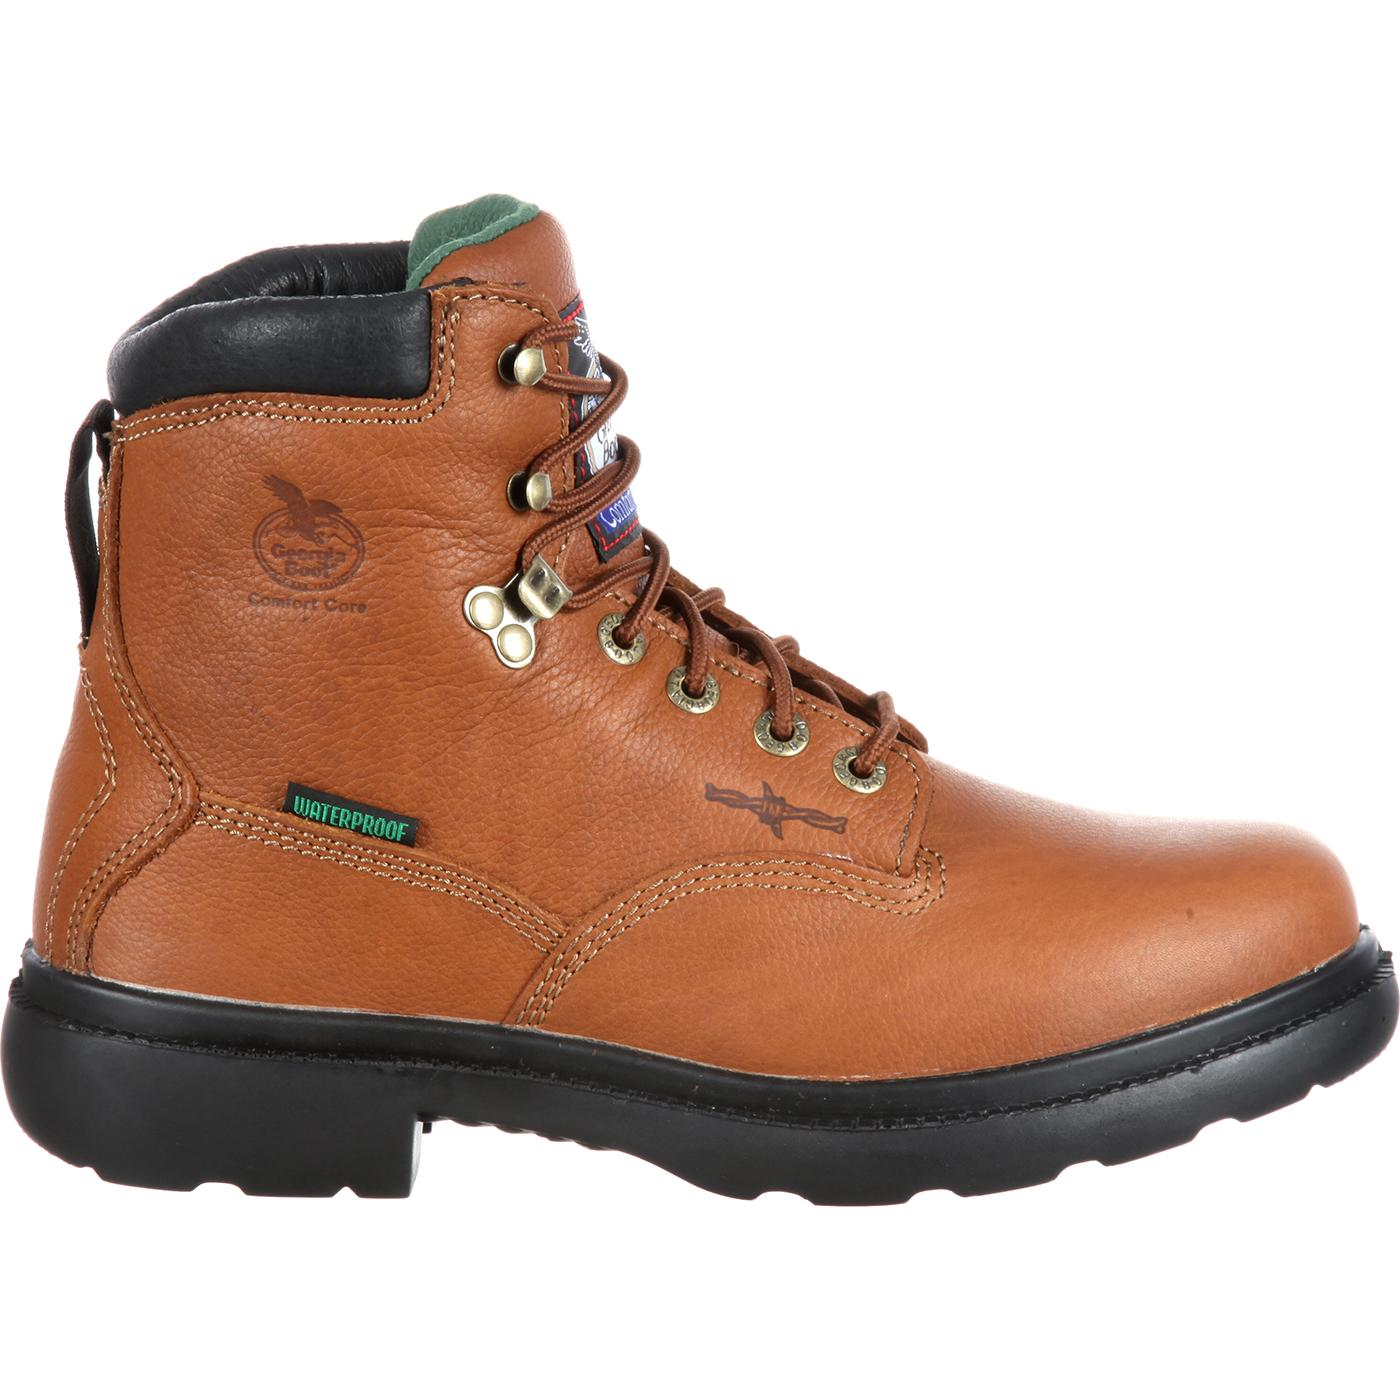 Comfortable Steel Toe Boots For - 28 Images - Comfortable Steel Toe Work Boots Yu Boots Serene ...